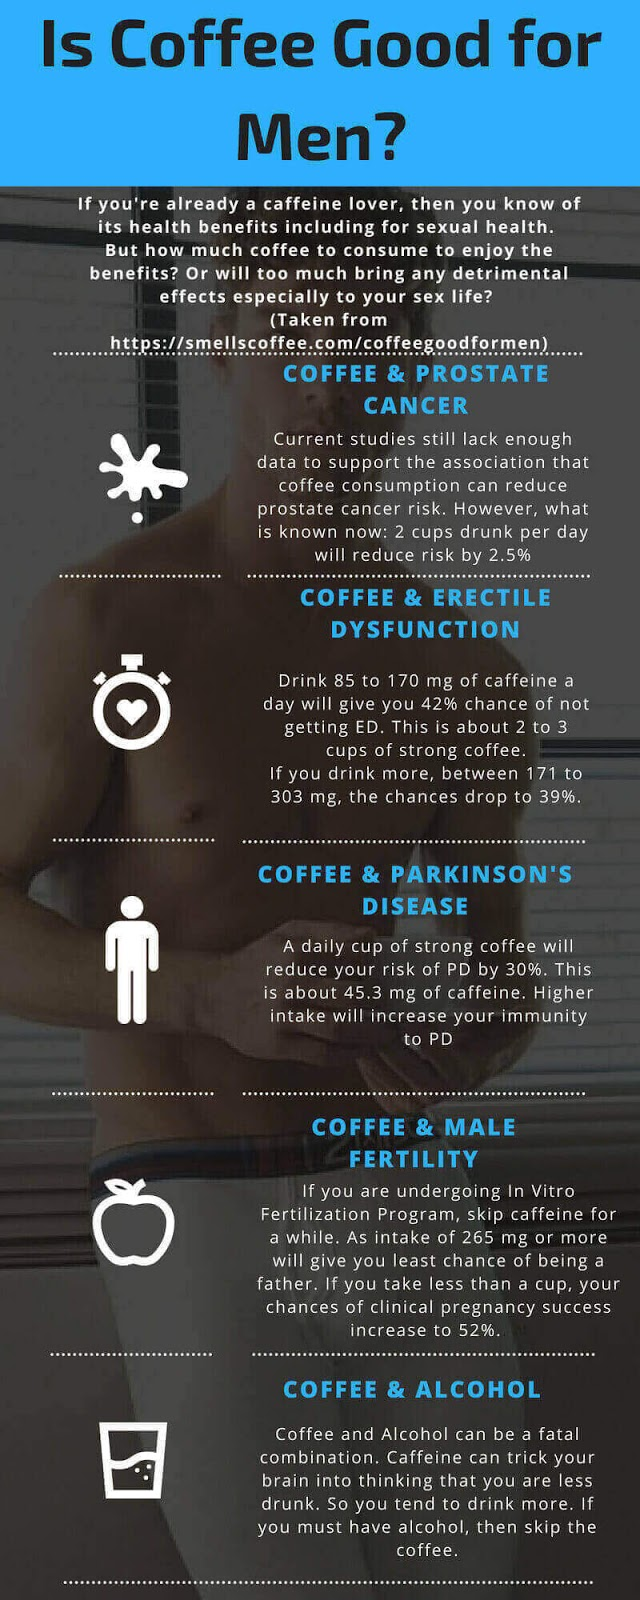 is coffee good for men infographic